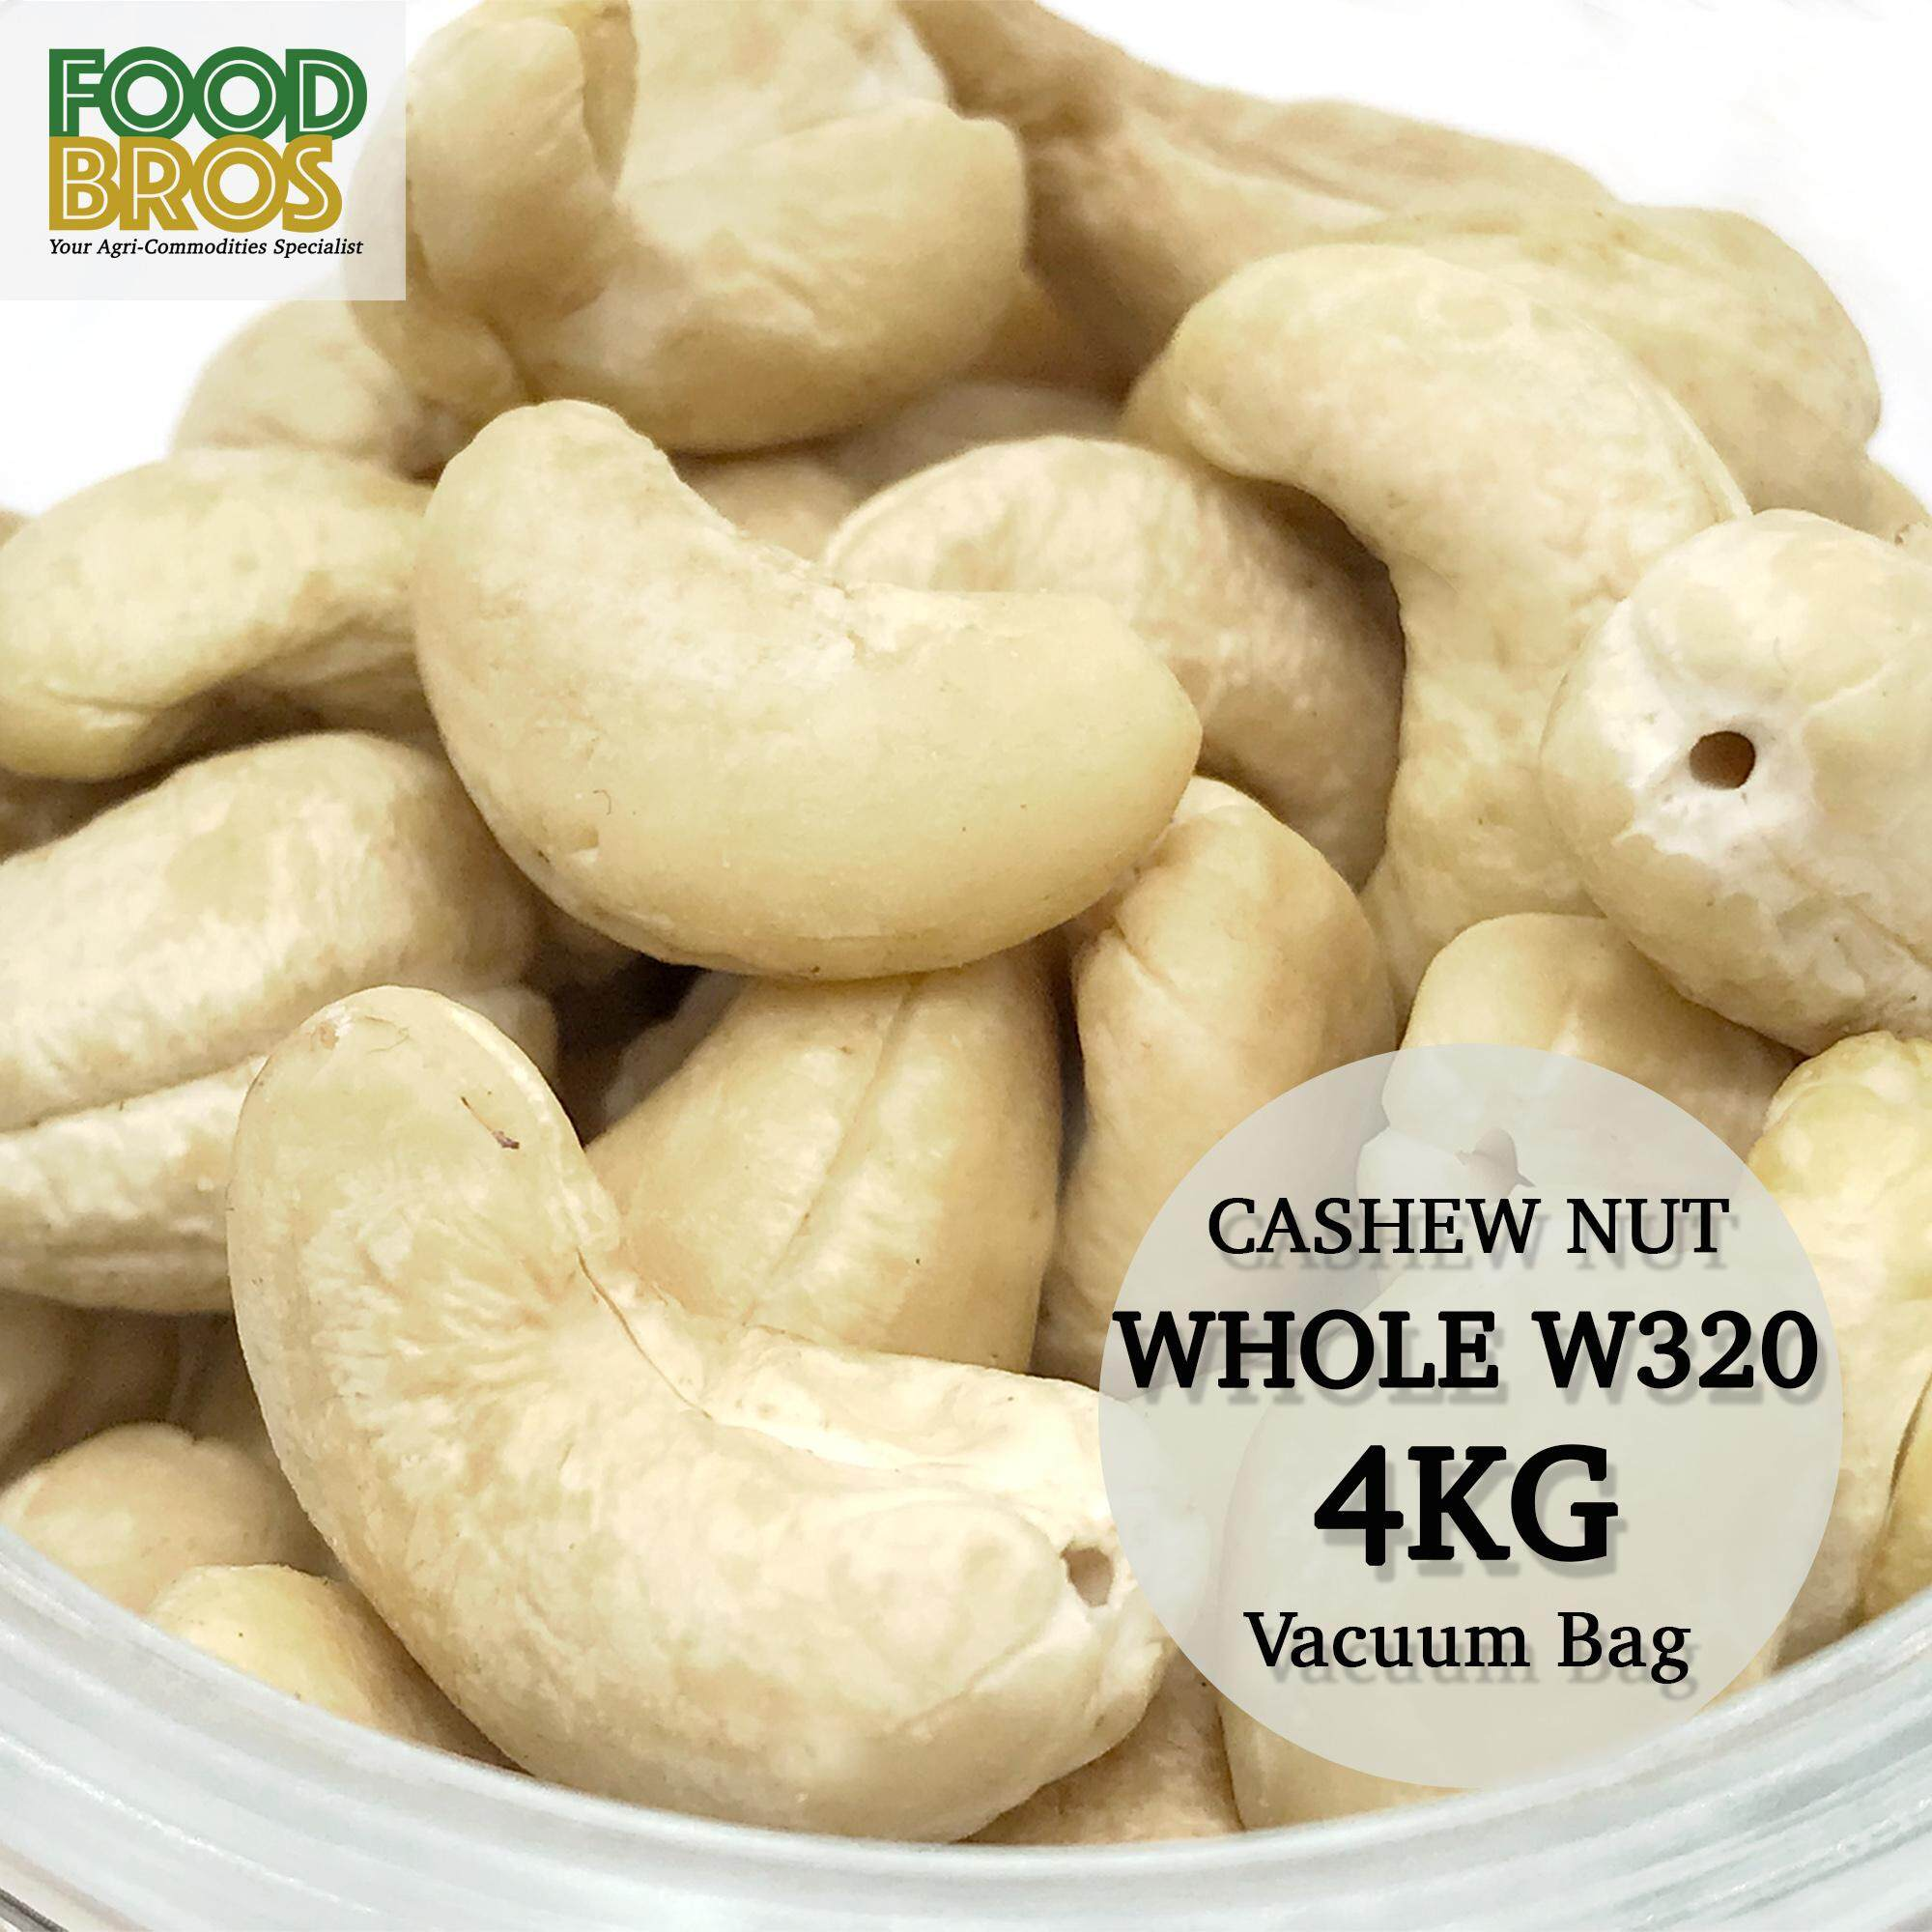 FOODBROS CASHEW NUT WW320 WHOLE NUT 4KG VACUUM BAG